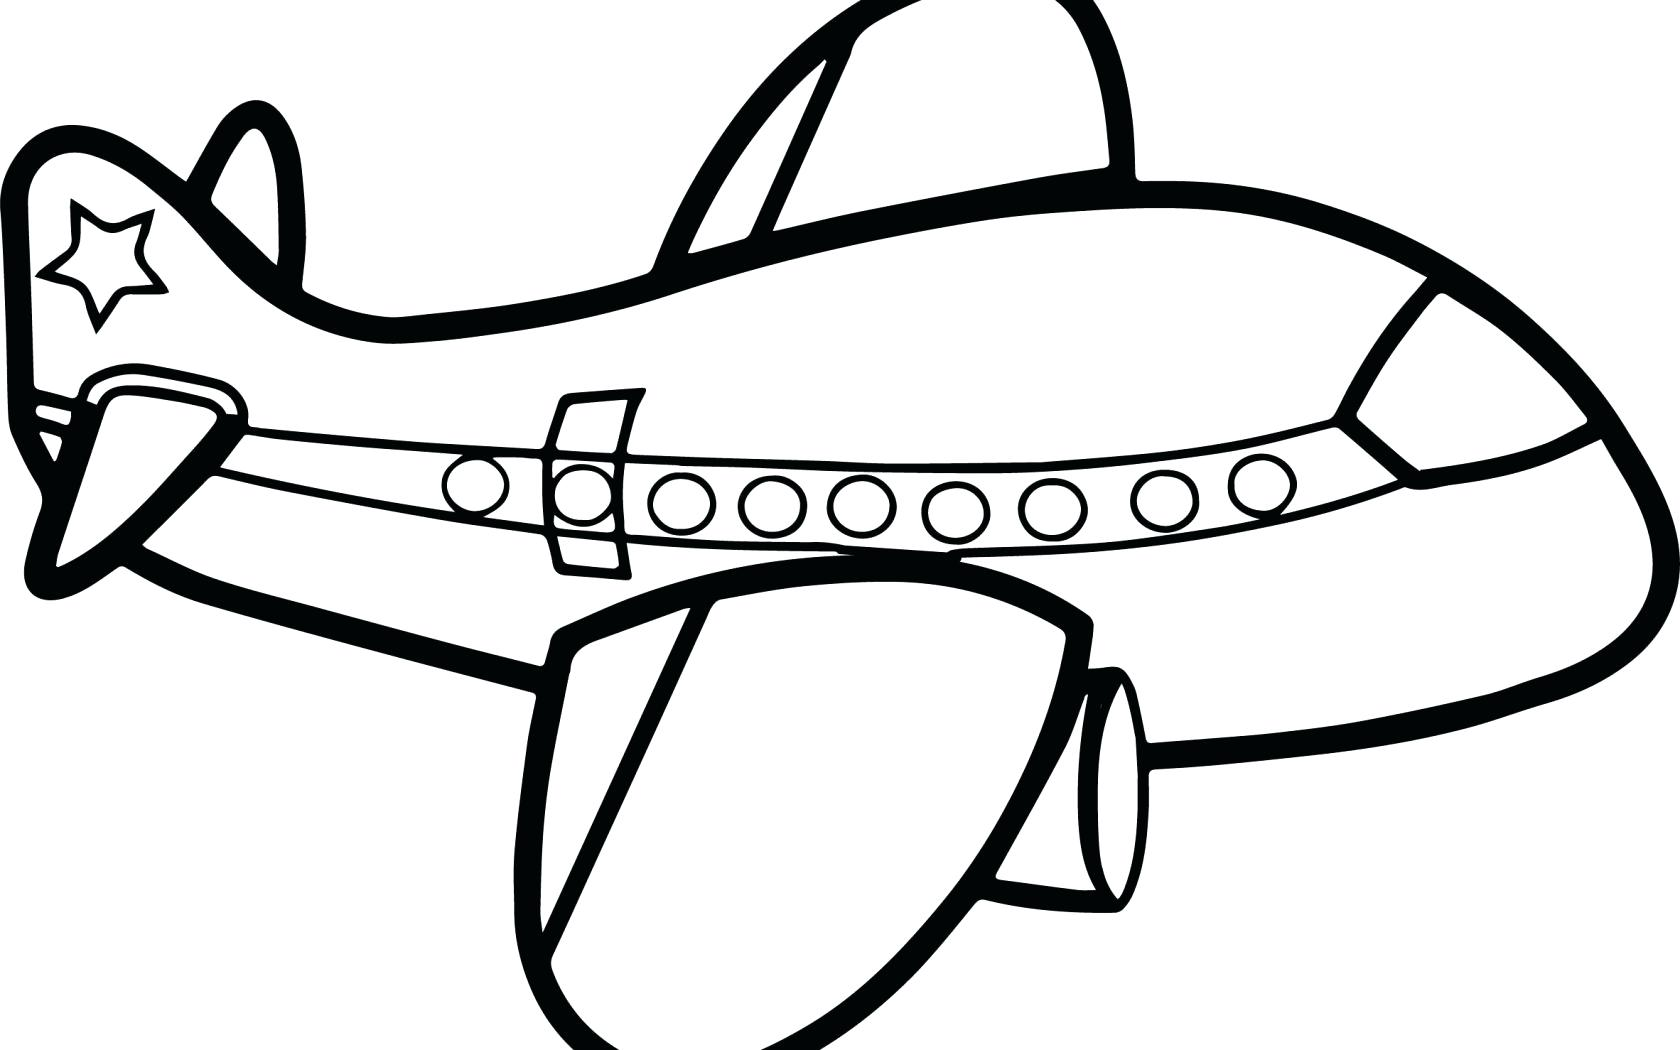 1680x1050 Coloring Airplane For Coloring